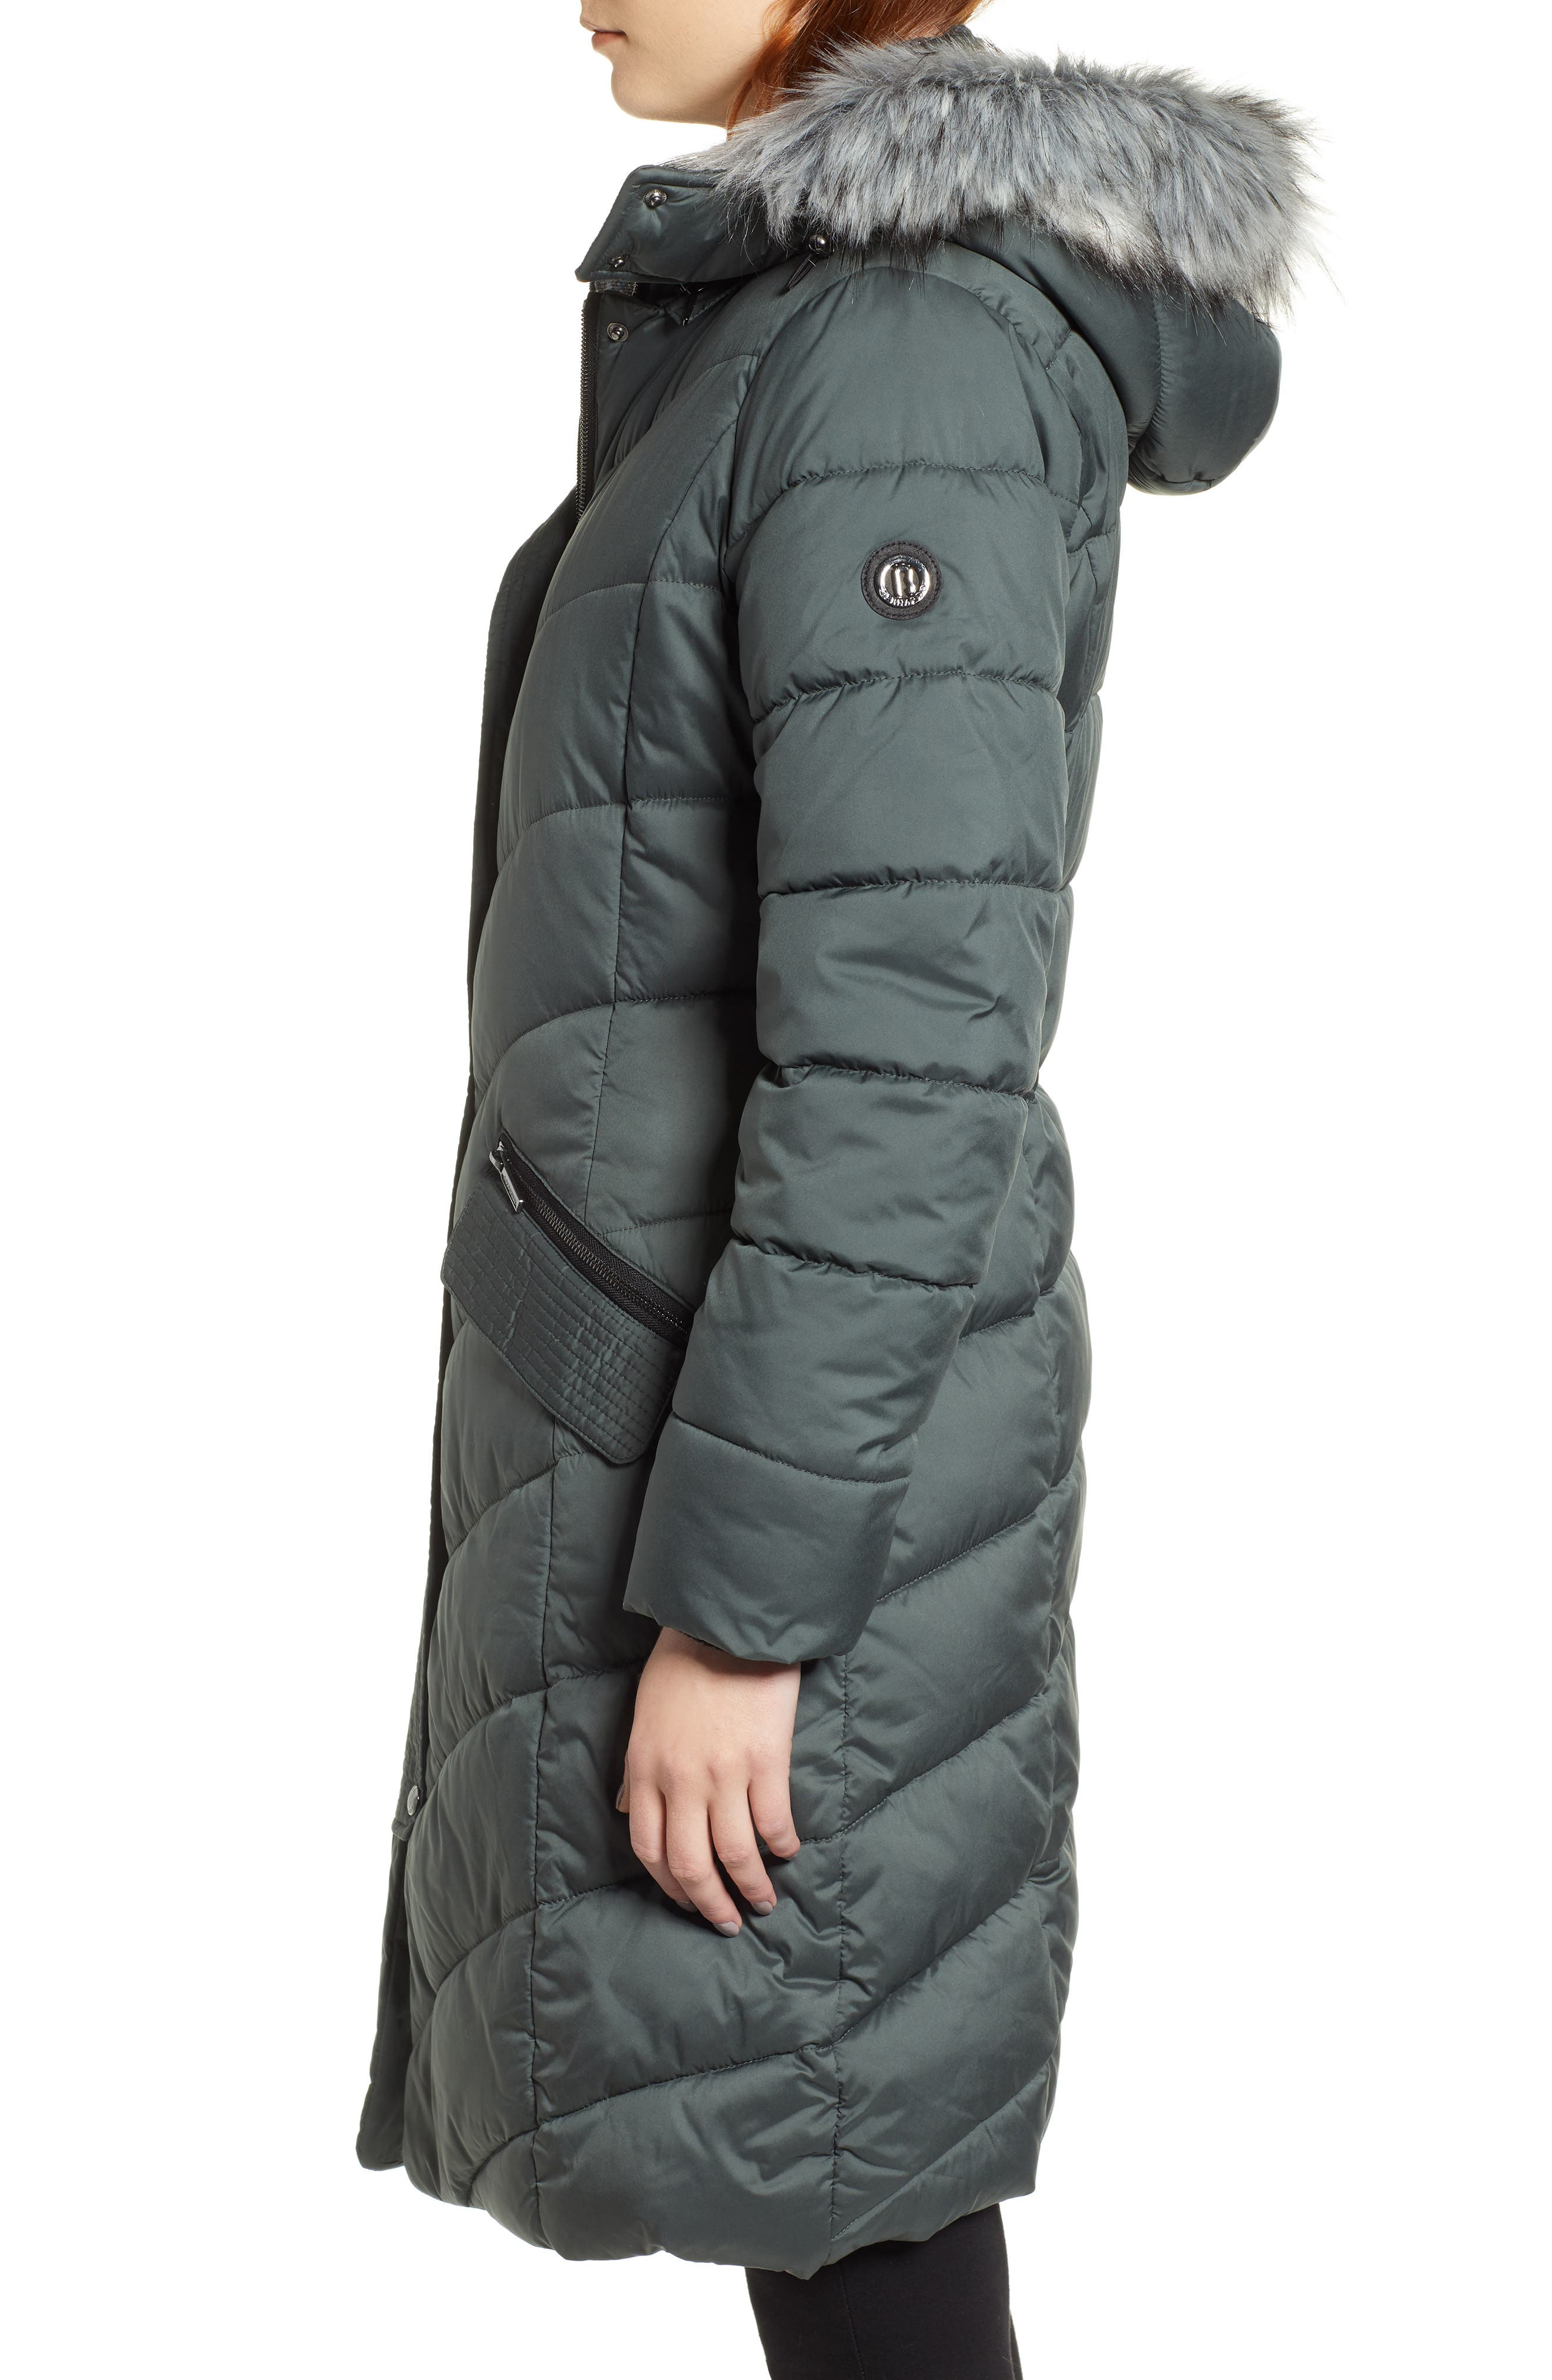 Puffer Jacket with Faux Fur Trim,                             Alternate thumbnail 3, color,                             DARK MOSS